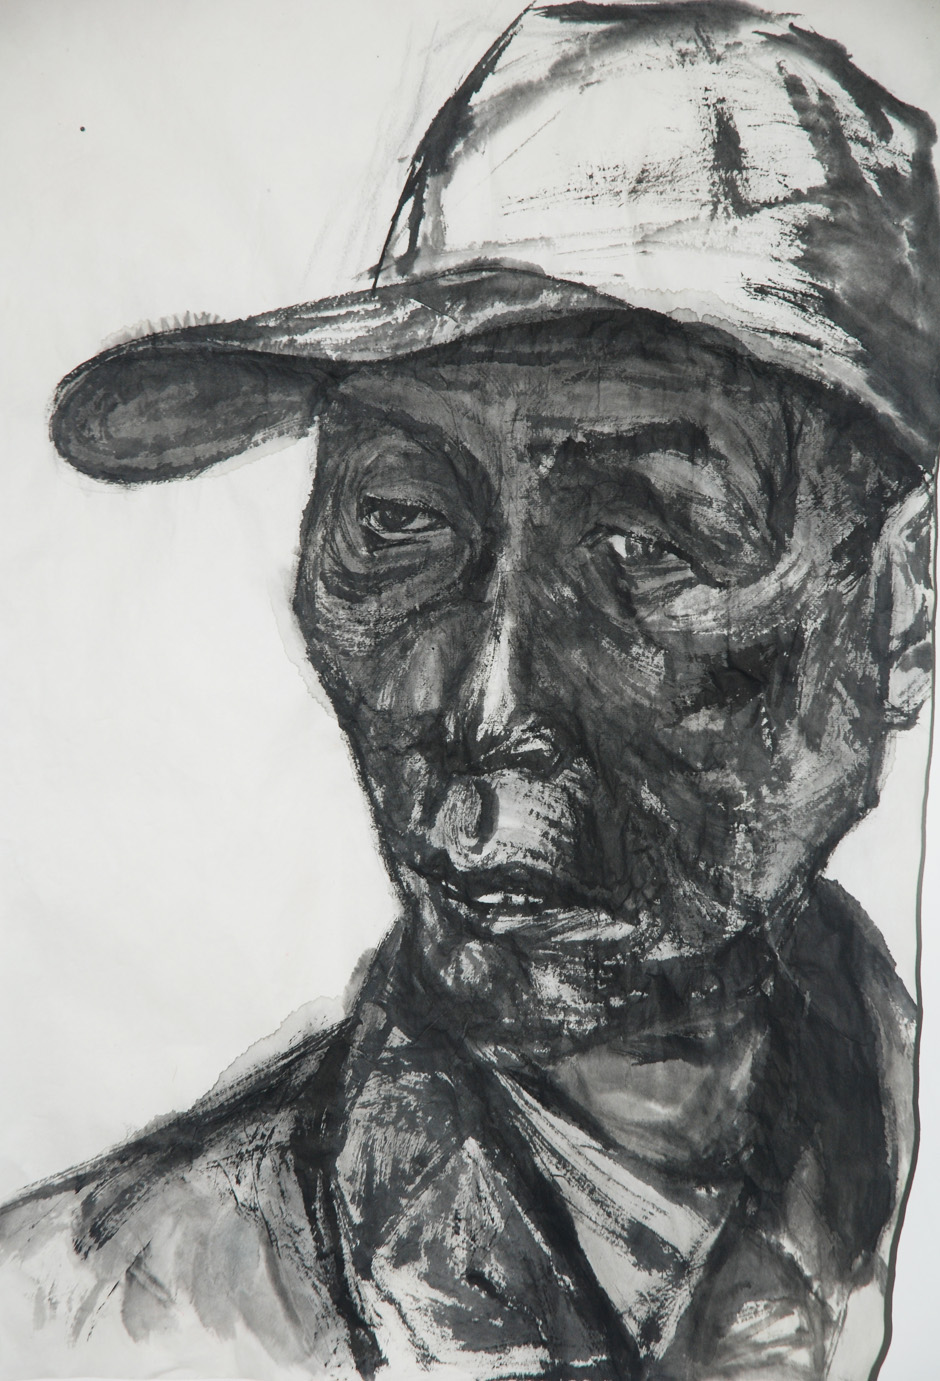 """Immigrant Worker 2 in Chengdu""   Ink on Chinese paper   55 x 80 cm   2011"